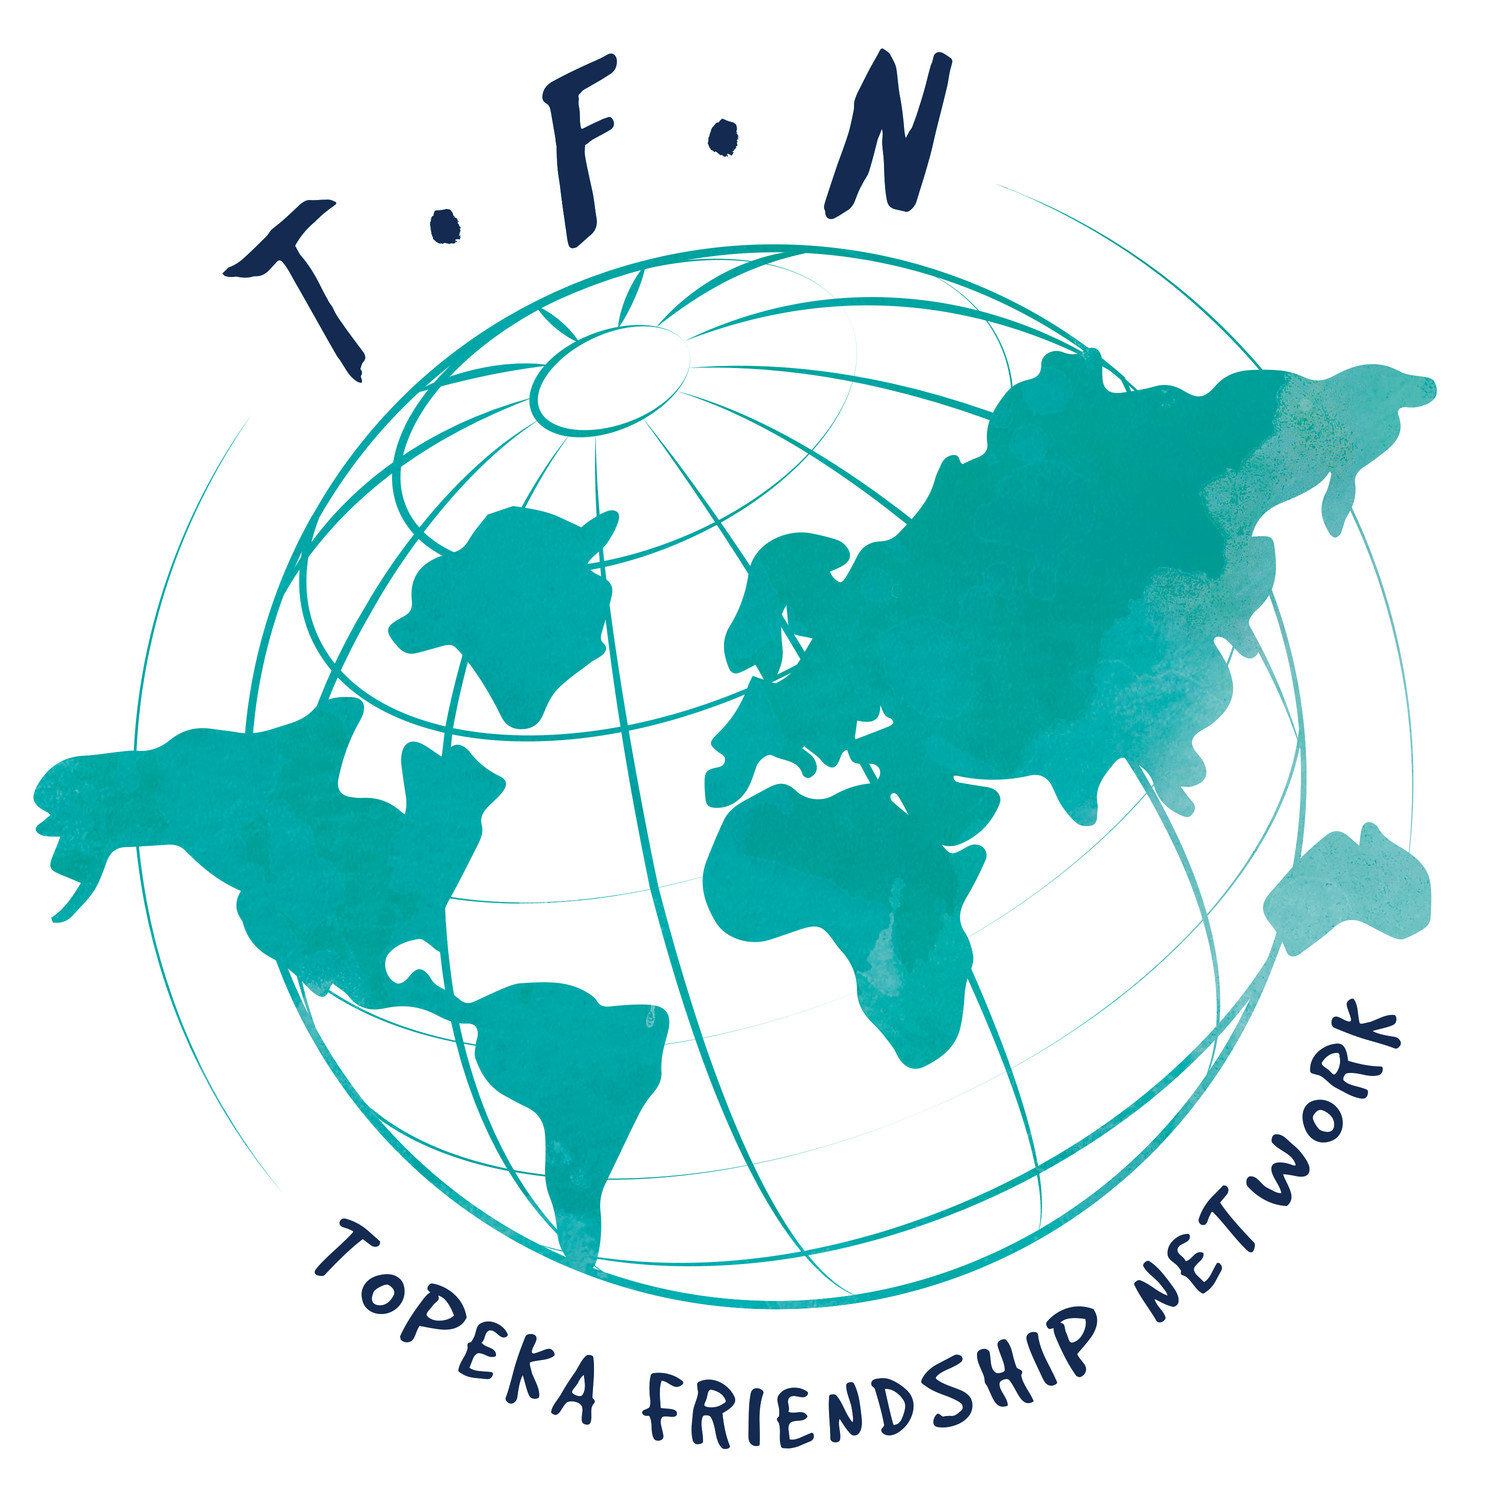 Topeka Friendship Network